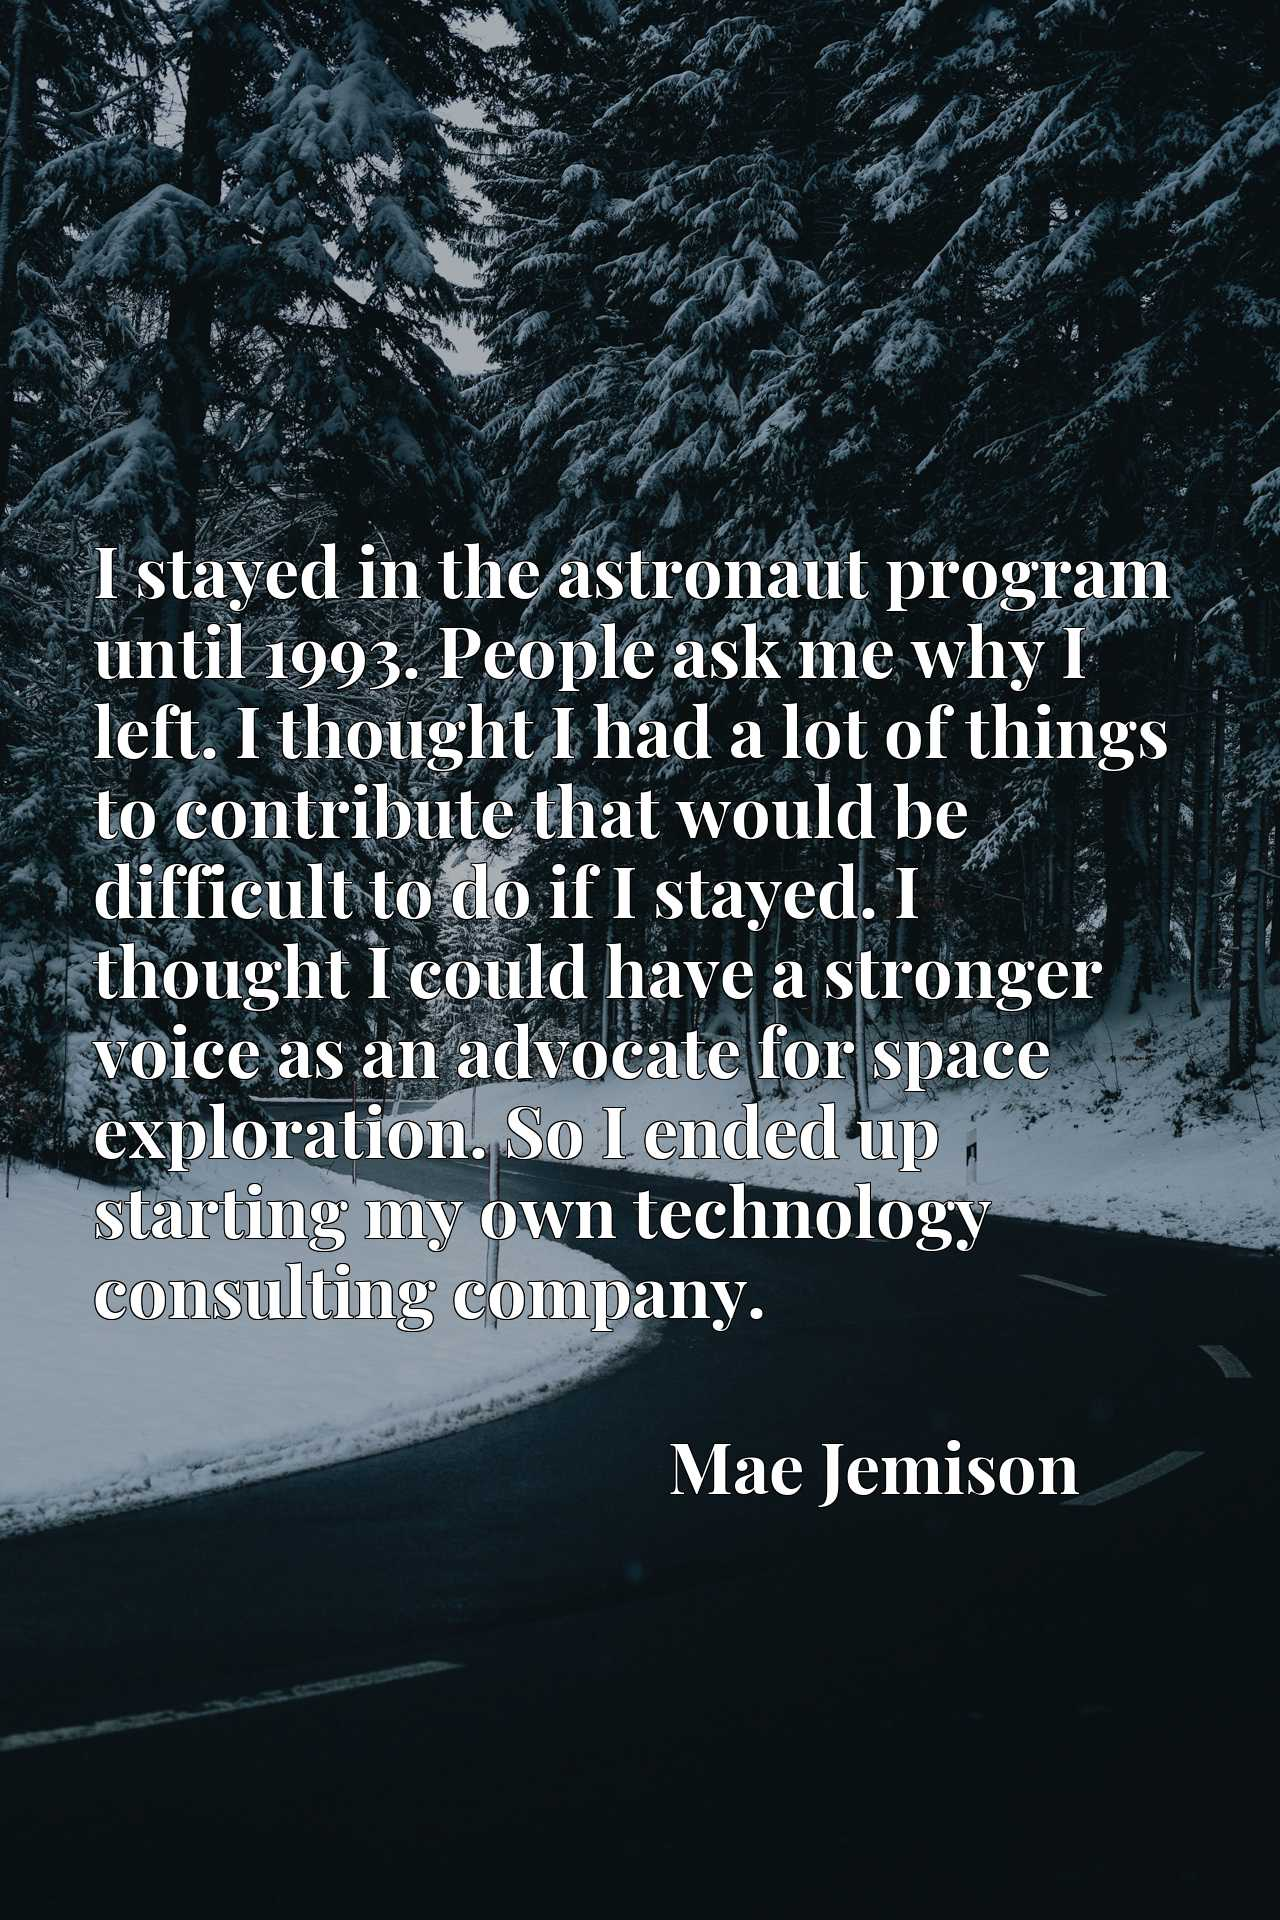 I stayed in the astronaut program until 1993. People ask me why I left. I thought I had a lot of things to contribute that would be difficult to do if I stayed. I thought I could have a stronger voice as an advocate for space exploration. So I ended up starting my own technology consulting company.